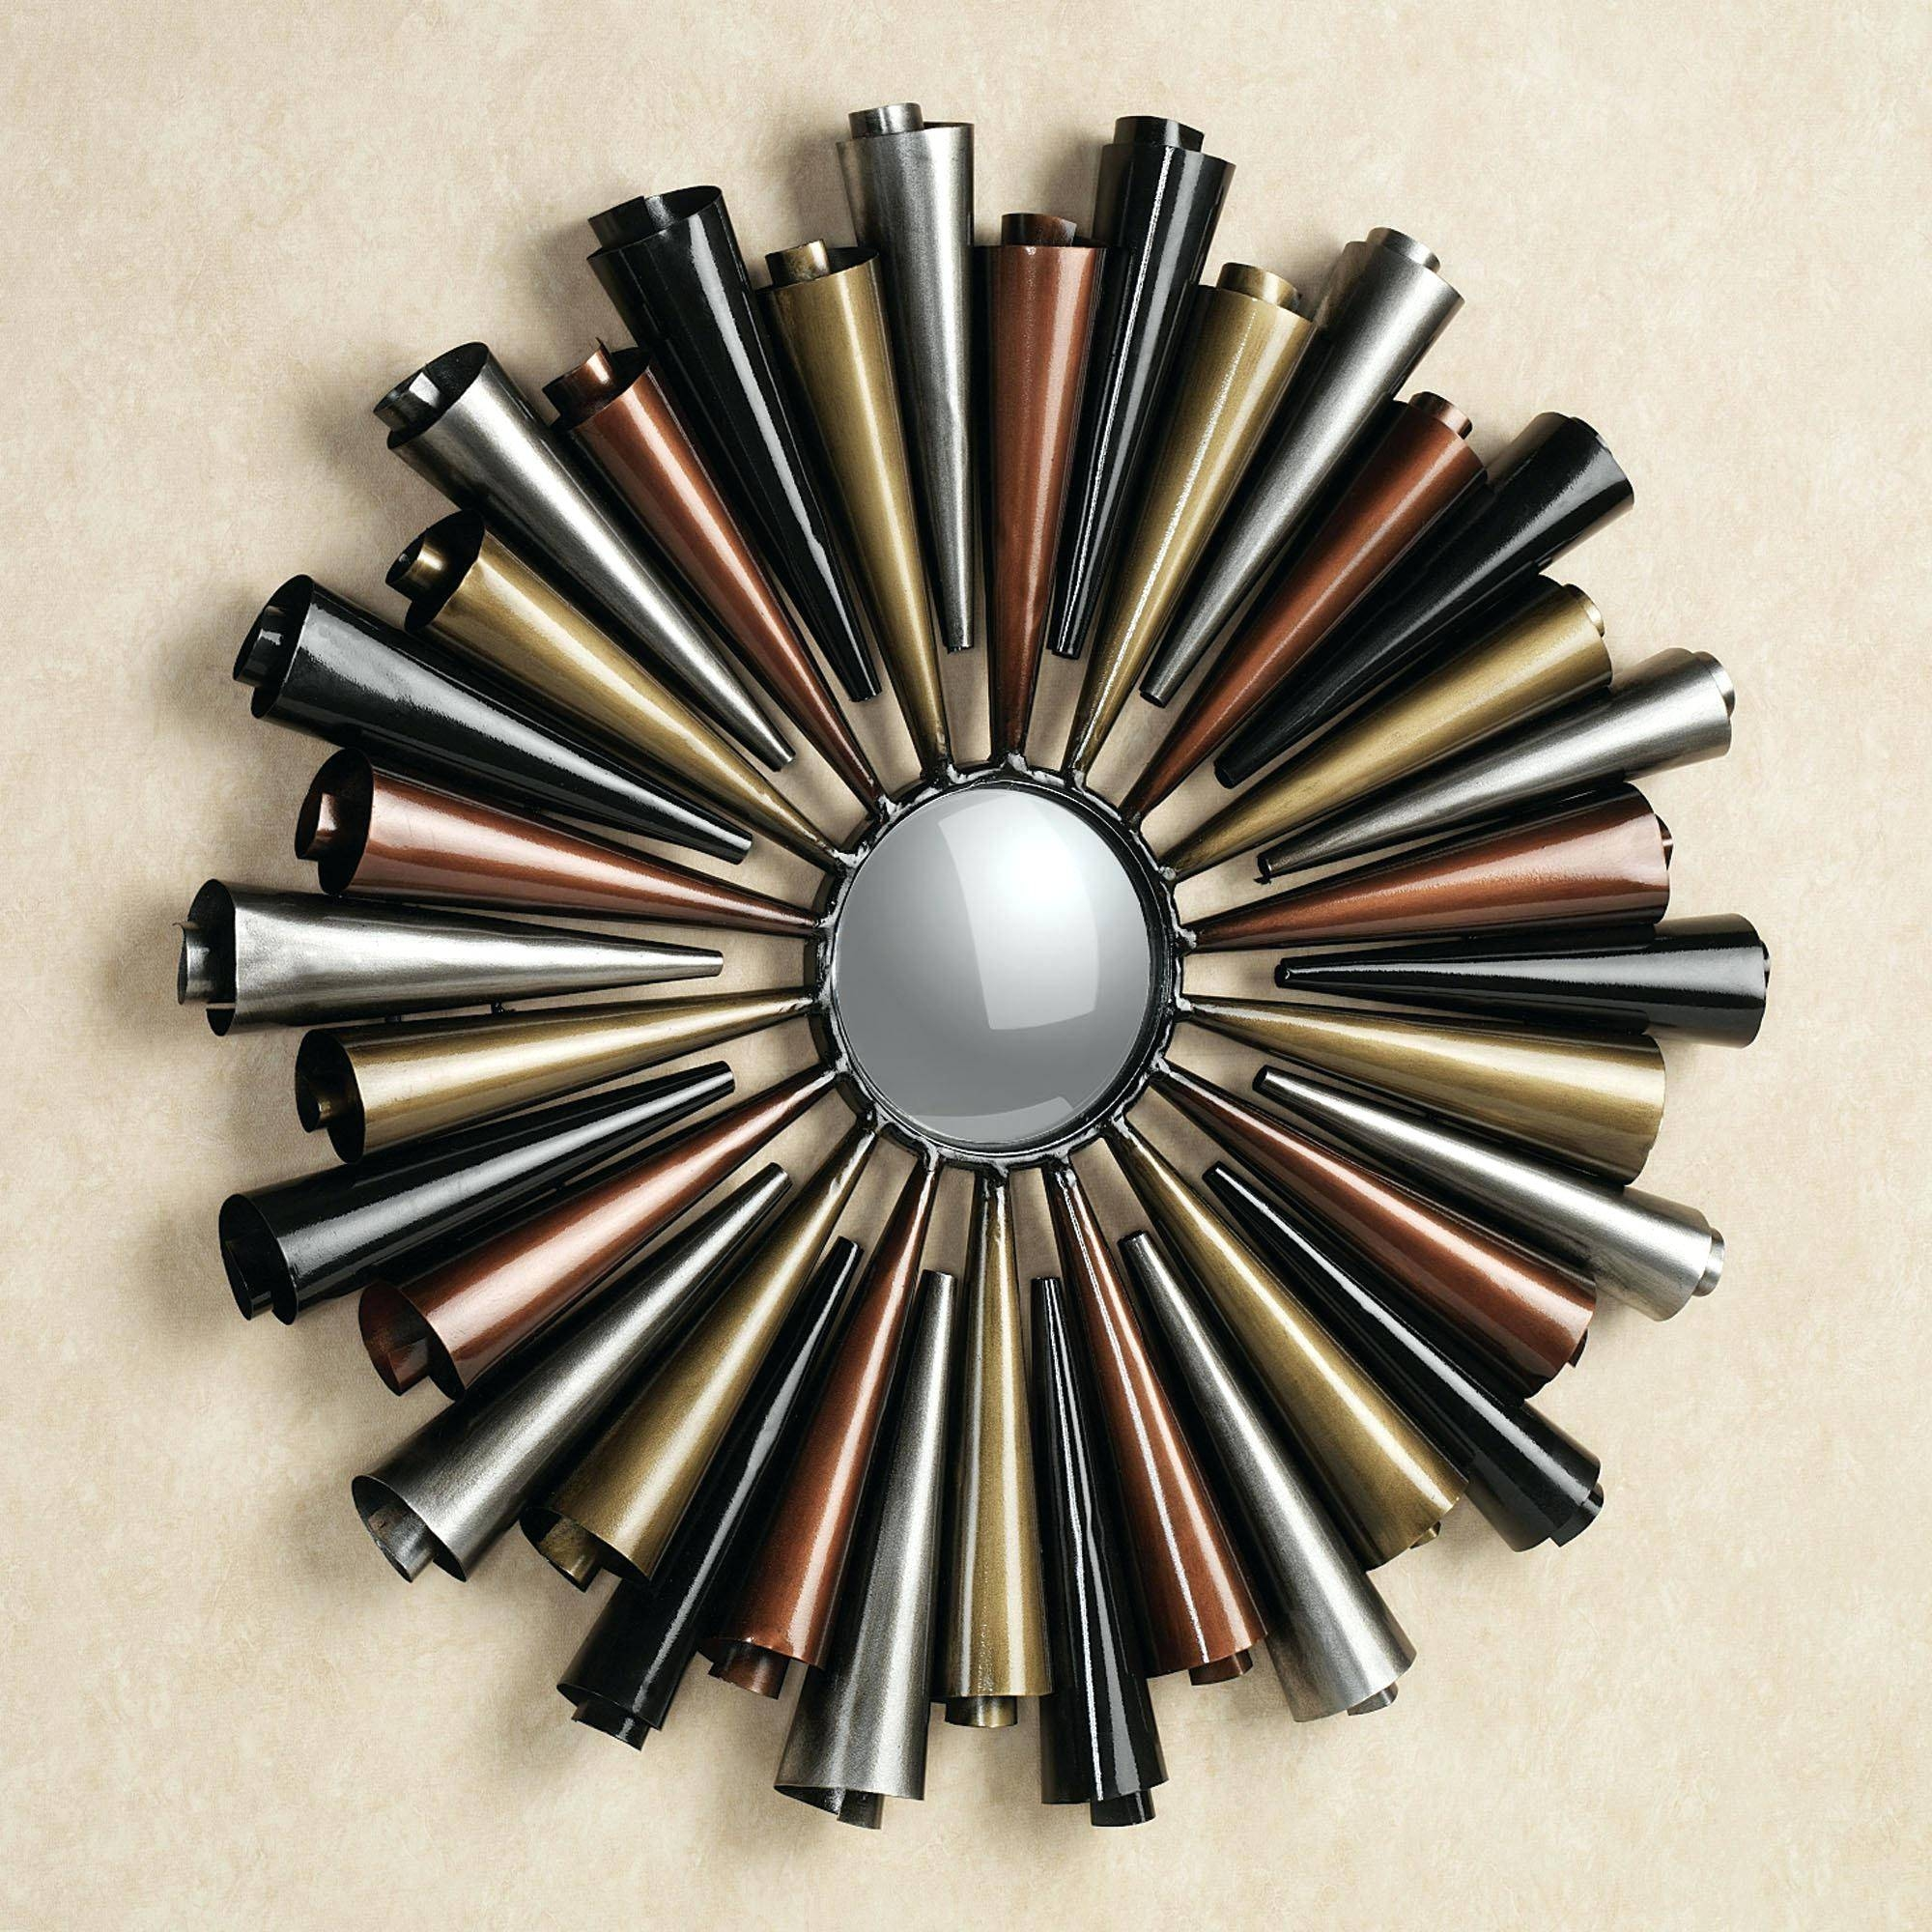 Wall Decor: Compact Iron Mirror Wall Decor Pictures (View 13 of 15)